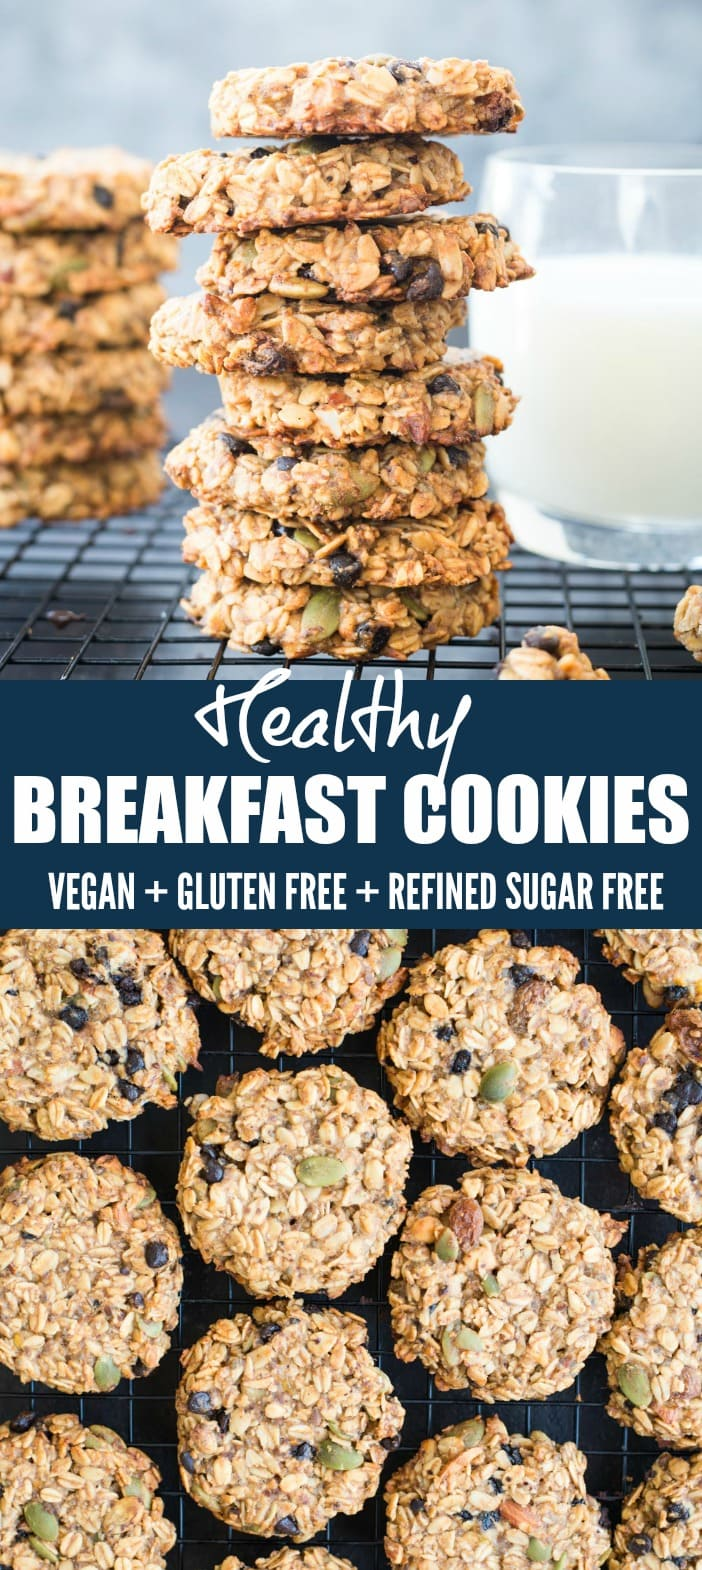 These Healthy Breakfast Cookies made with Banana, Oatmeal, nuts, seeds are gluten-free and Vegan. These make-ahead breakfast cookies are perfect for busy mornings.